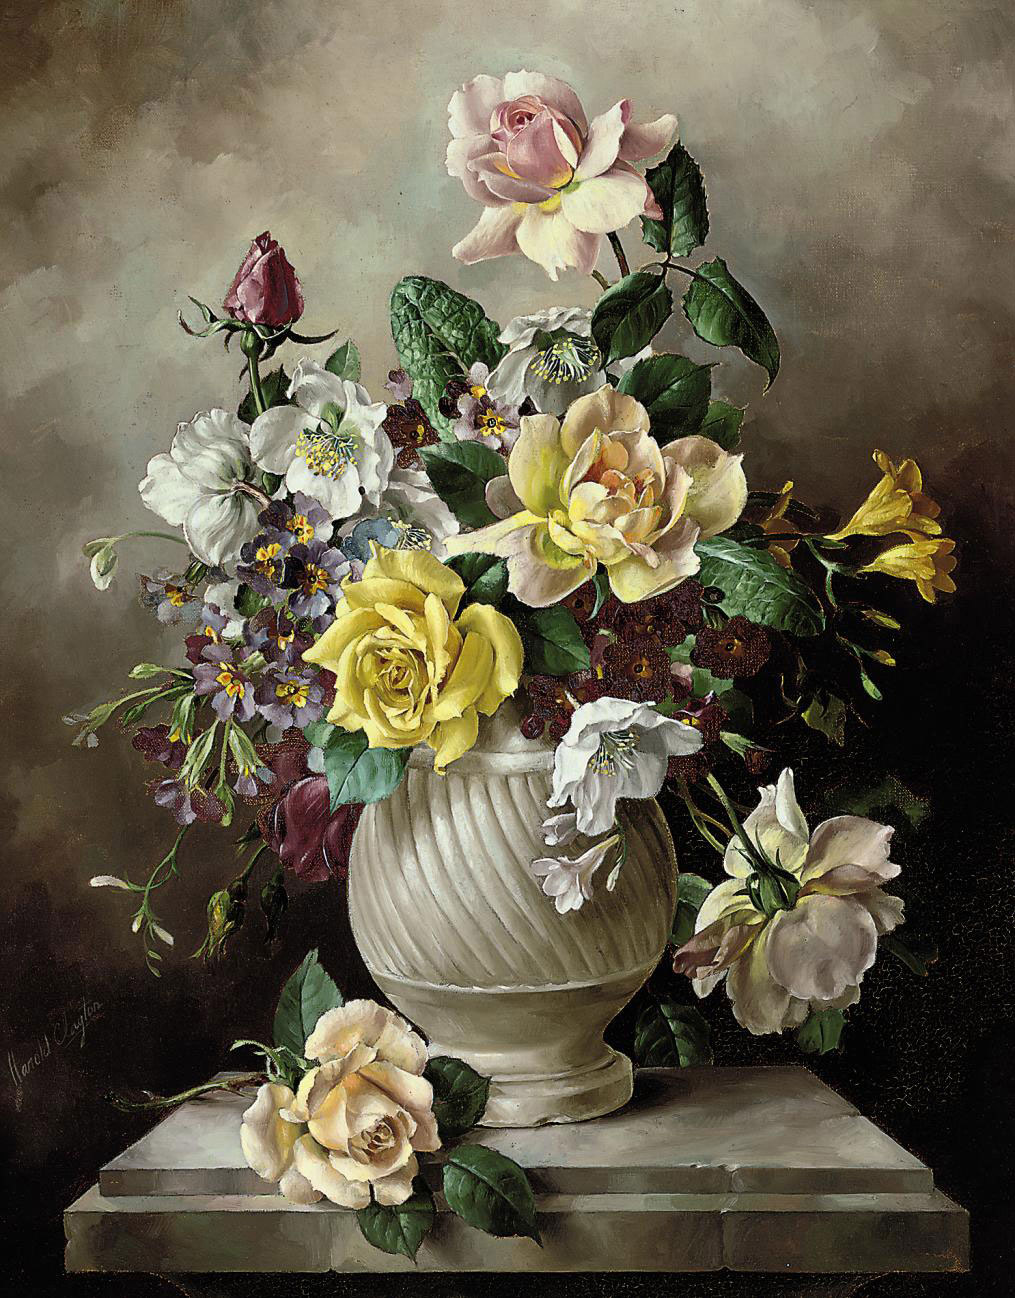 Roses, freesias, primroses and dog roses in a white urn on a marble pedestal